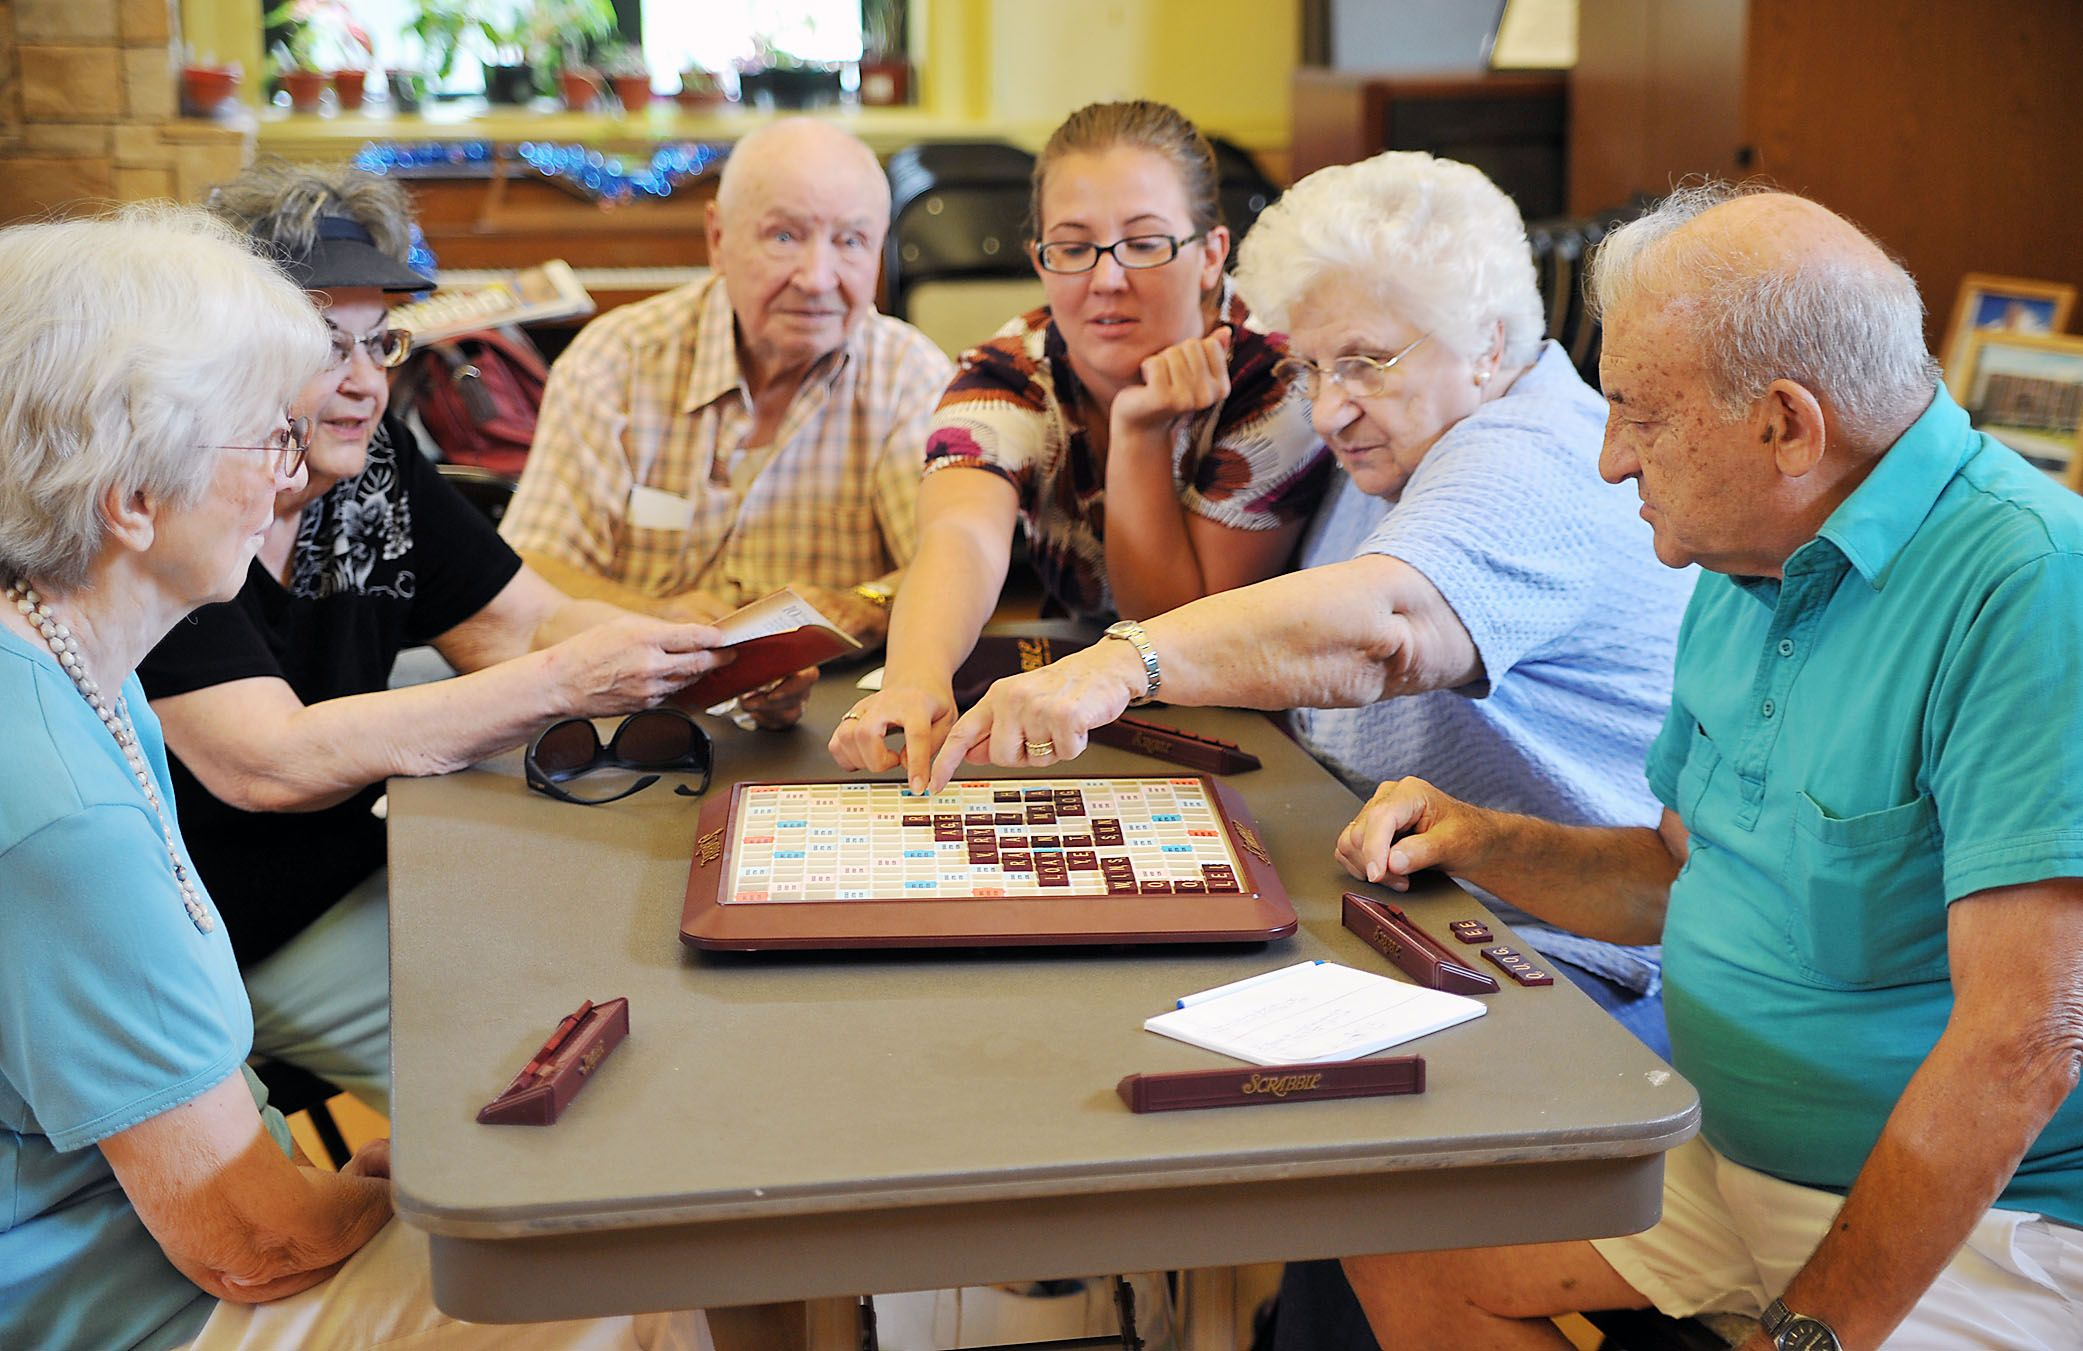 Playing games like Scrabble is a great way for seniors to